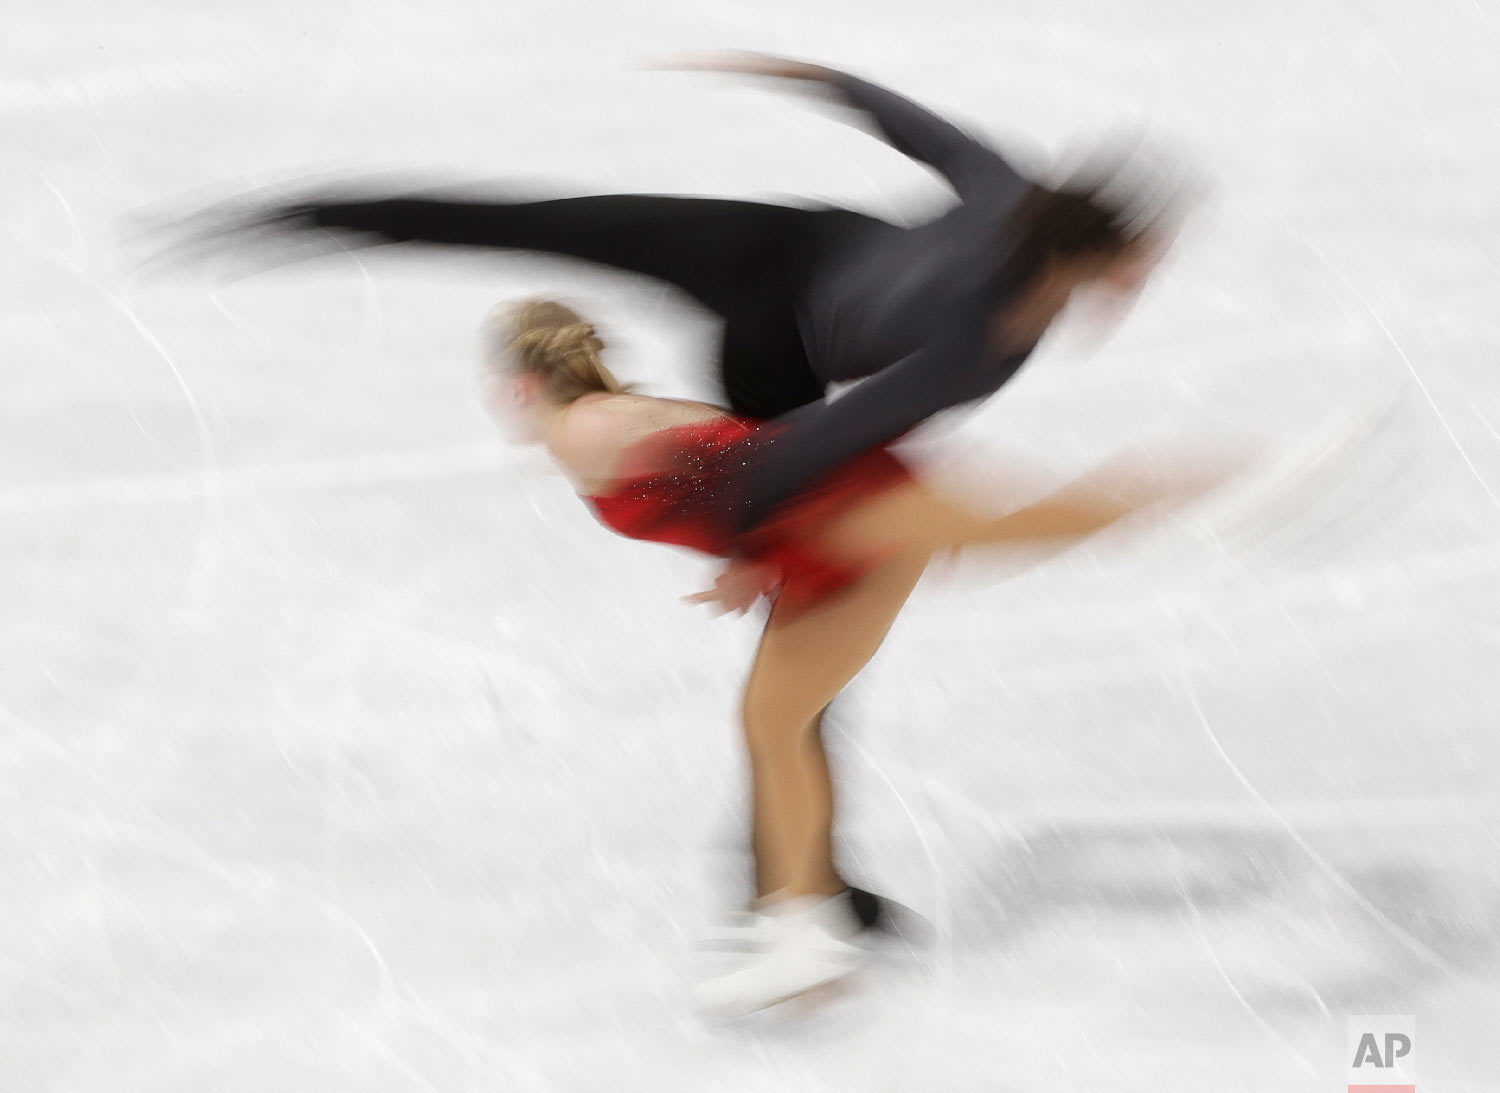 Julianne Seguin and Charlie Bilodeau, of Canada, perform in the pairs free skate figure skating final in the Gangneung Ice Arena at the 2018 Winter Olympics in Gangneung, South Korea, Thursday, Feb. 15, 2018. (AP Photo/David J. Phillip)